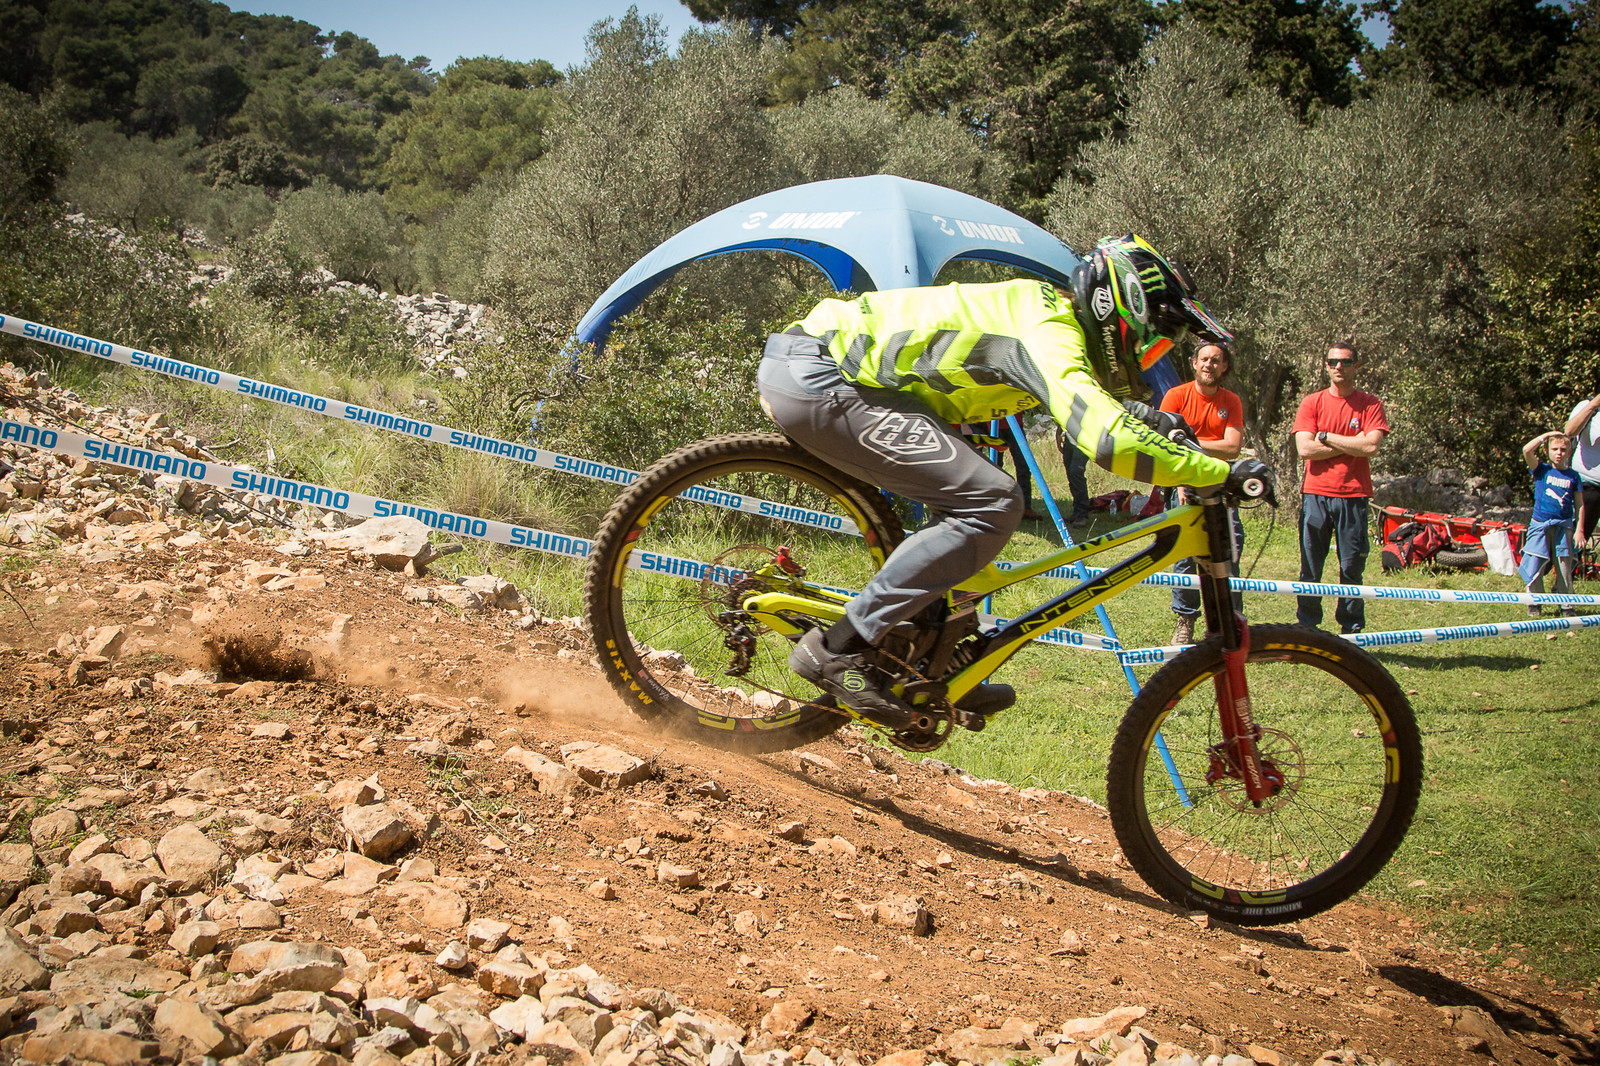 Charlie Harrison Credit Card Swiping - G-Out Project - Croatia World Cup DH - Mountain Biking Pictures - Vital MTB